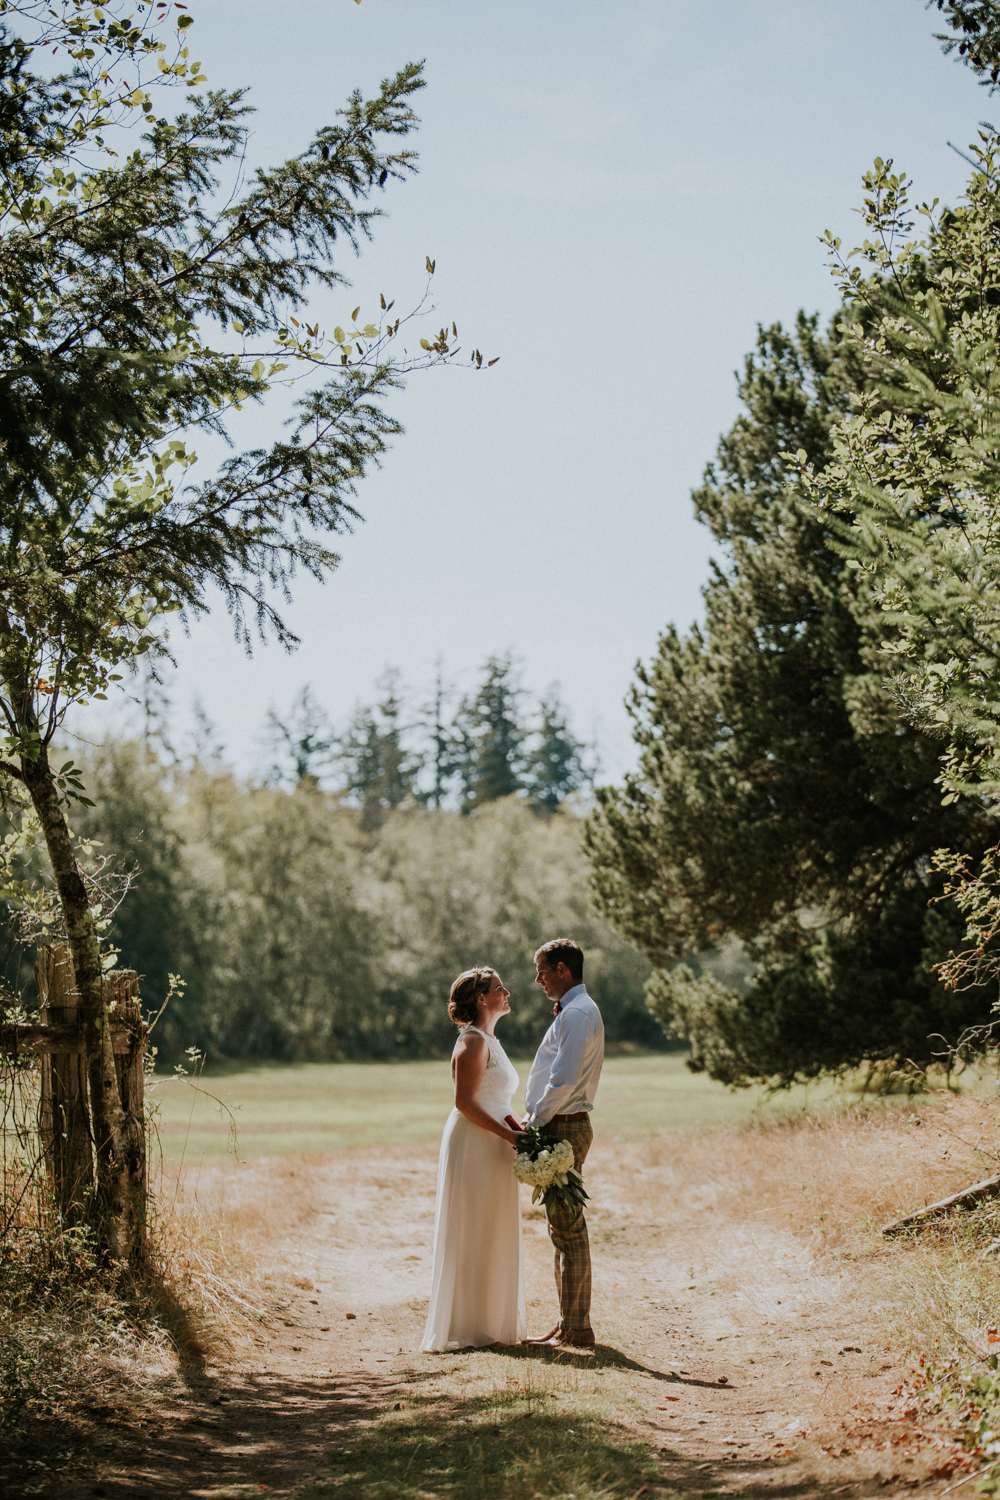 About to be wed Bride and Groom holding hands King Francis Park Forest wedding Vancouver Island